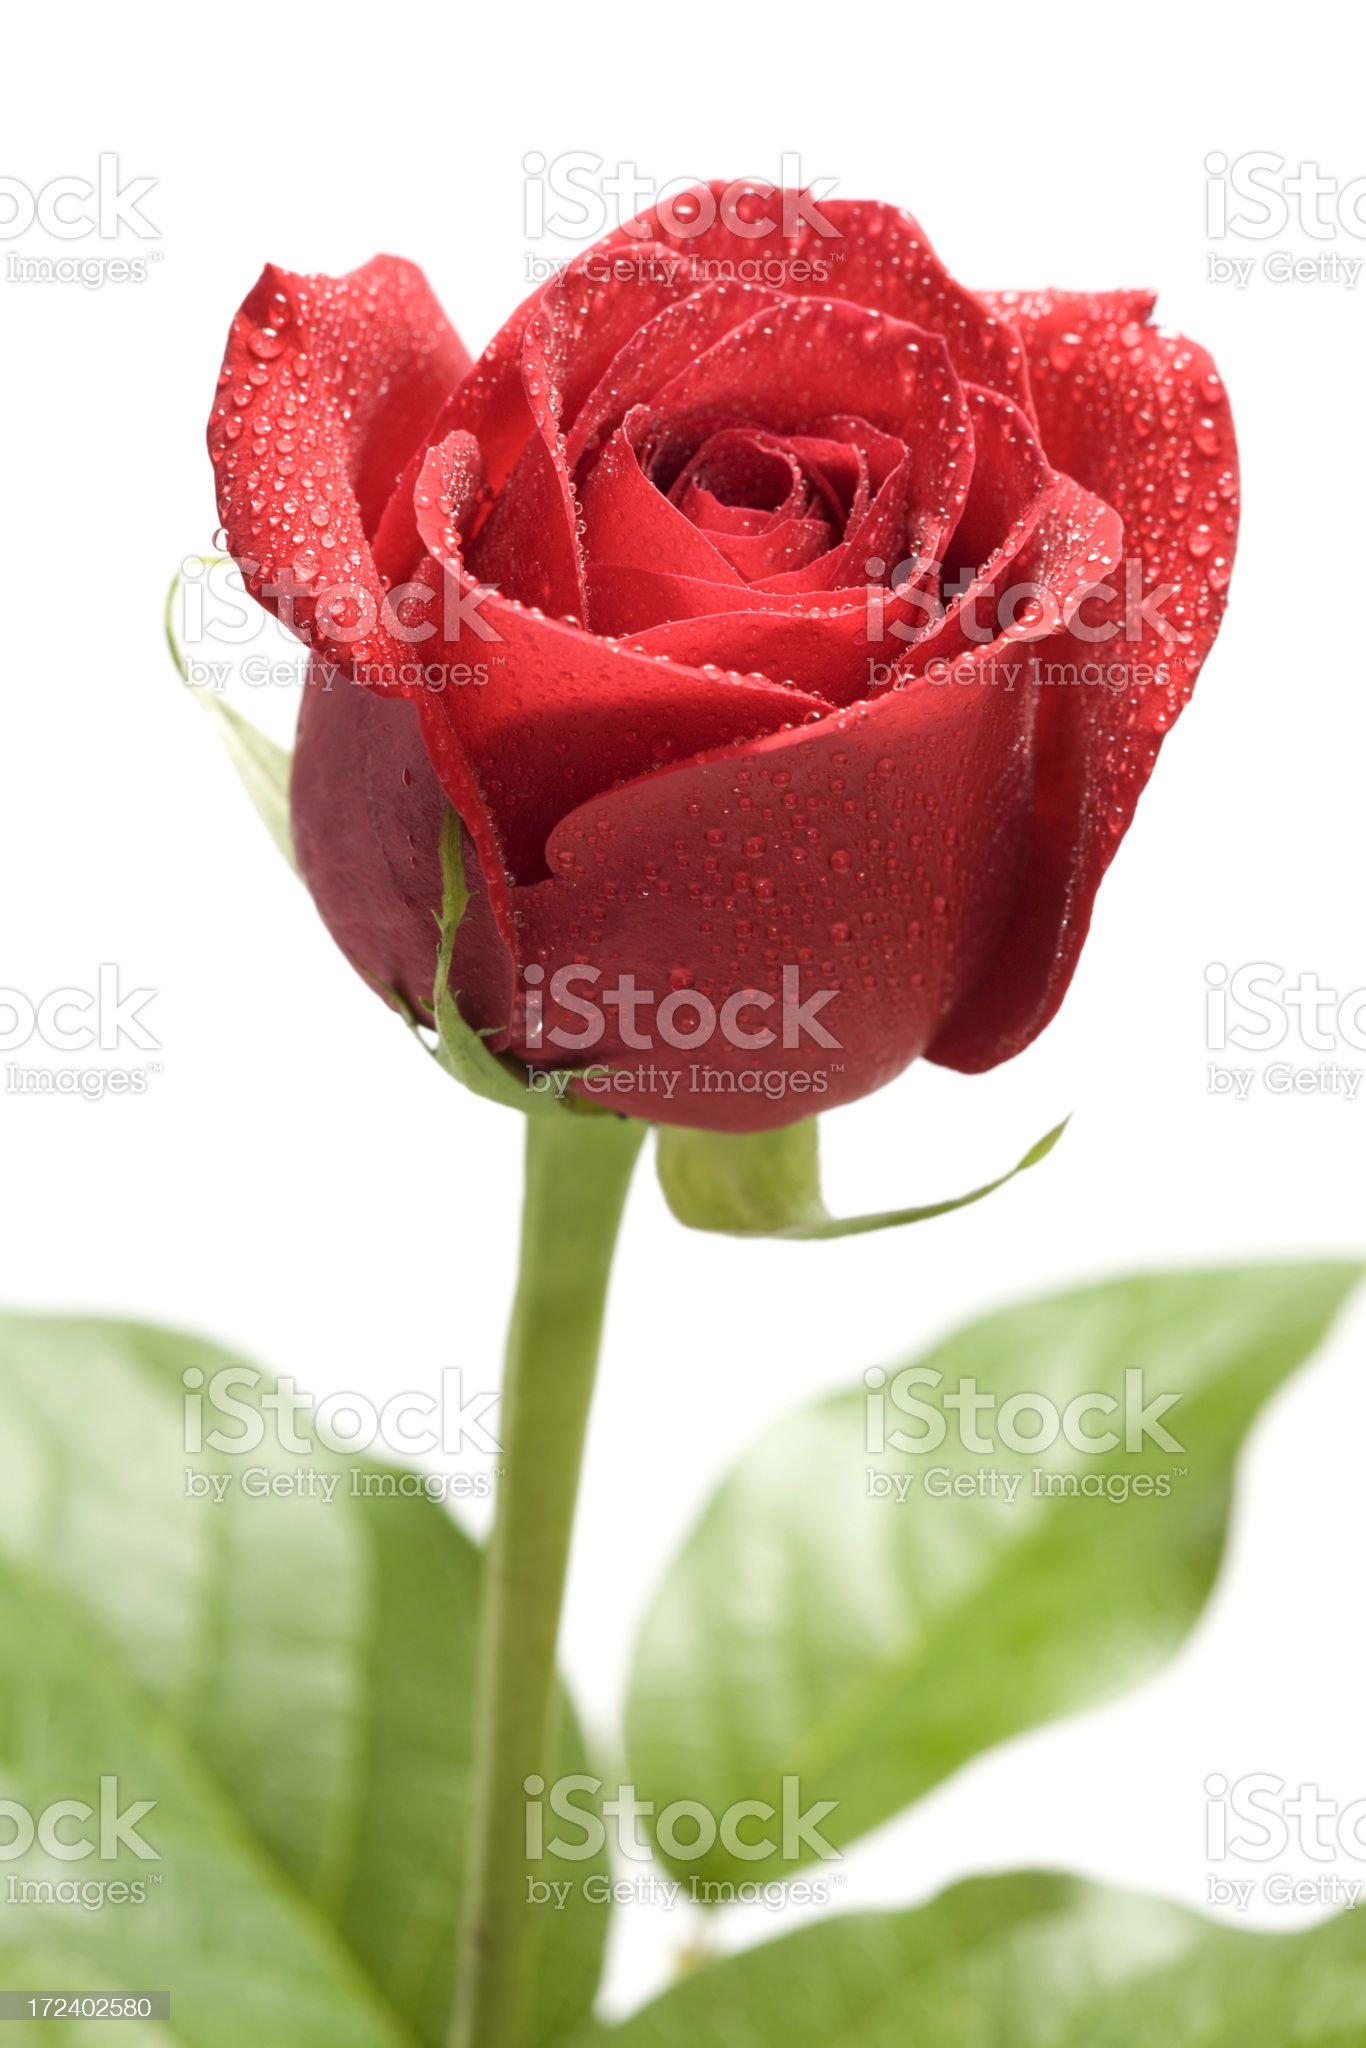 Red Rose on White Background royalty-free stock photo